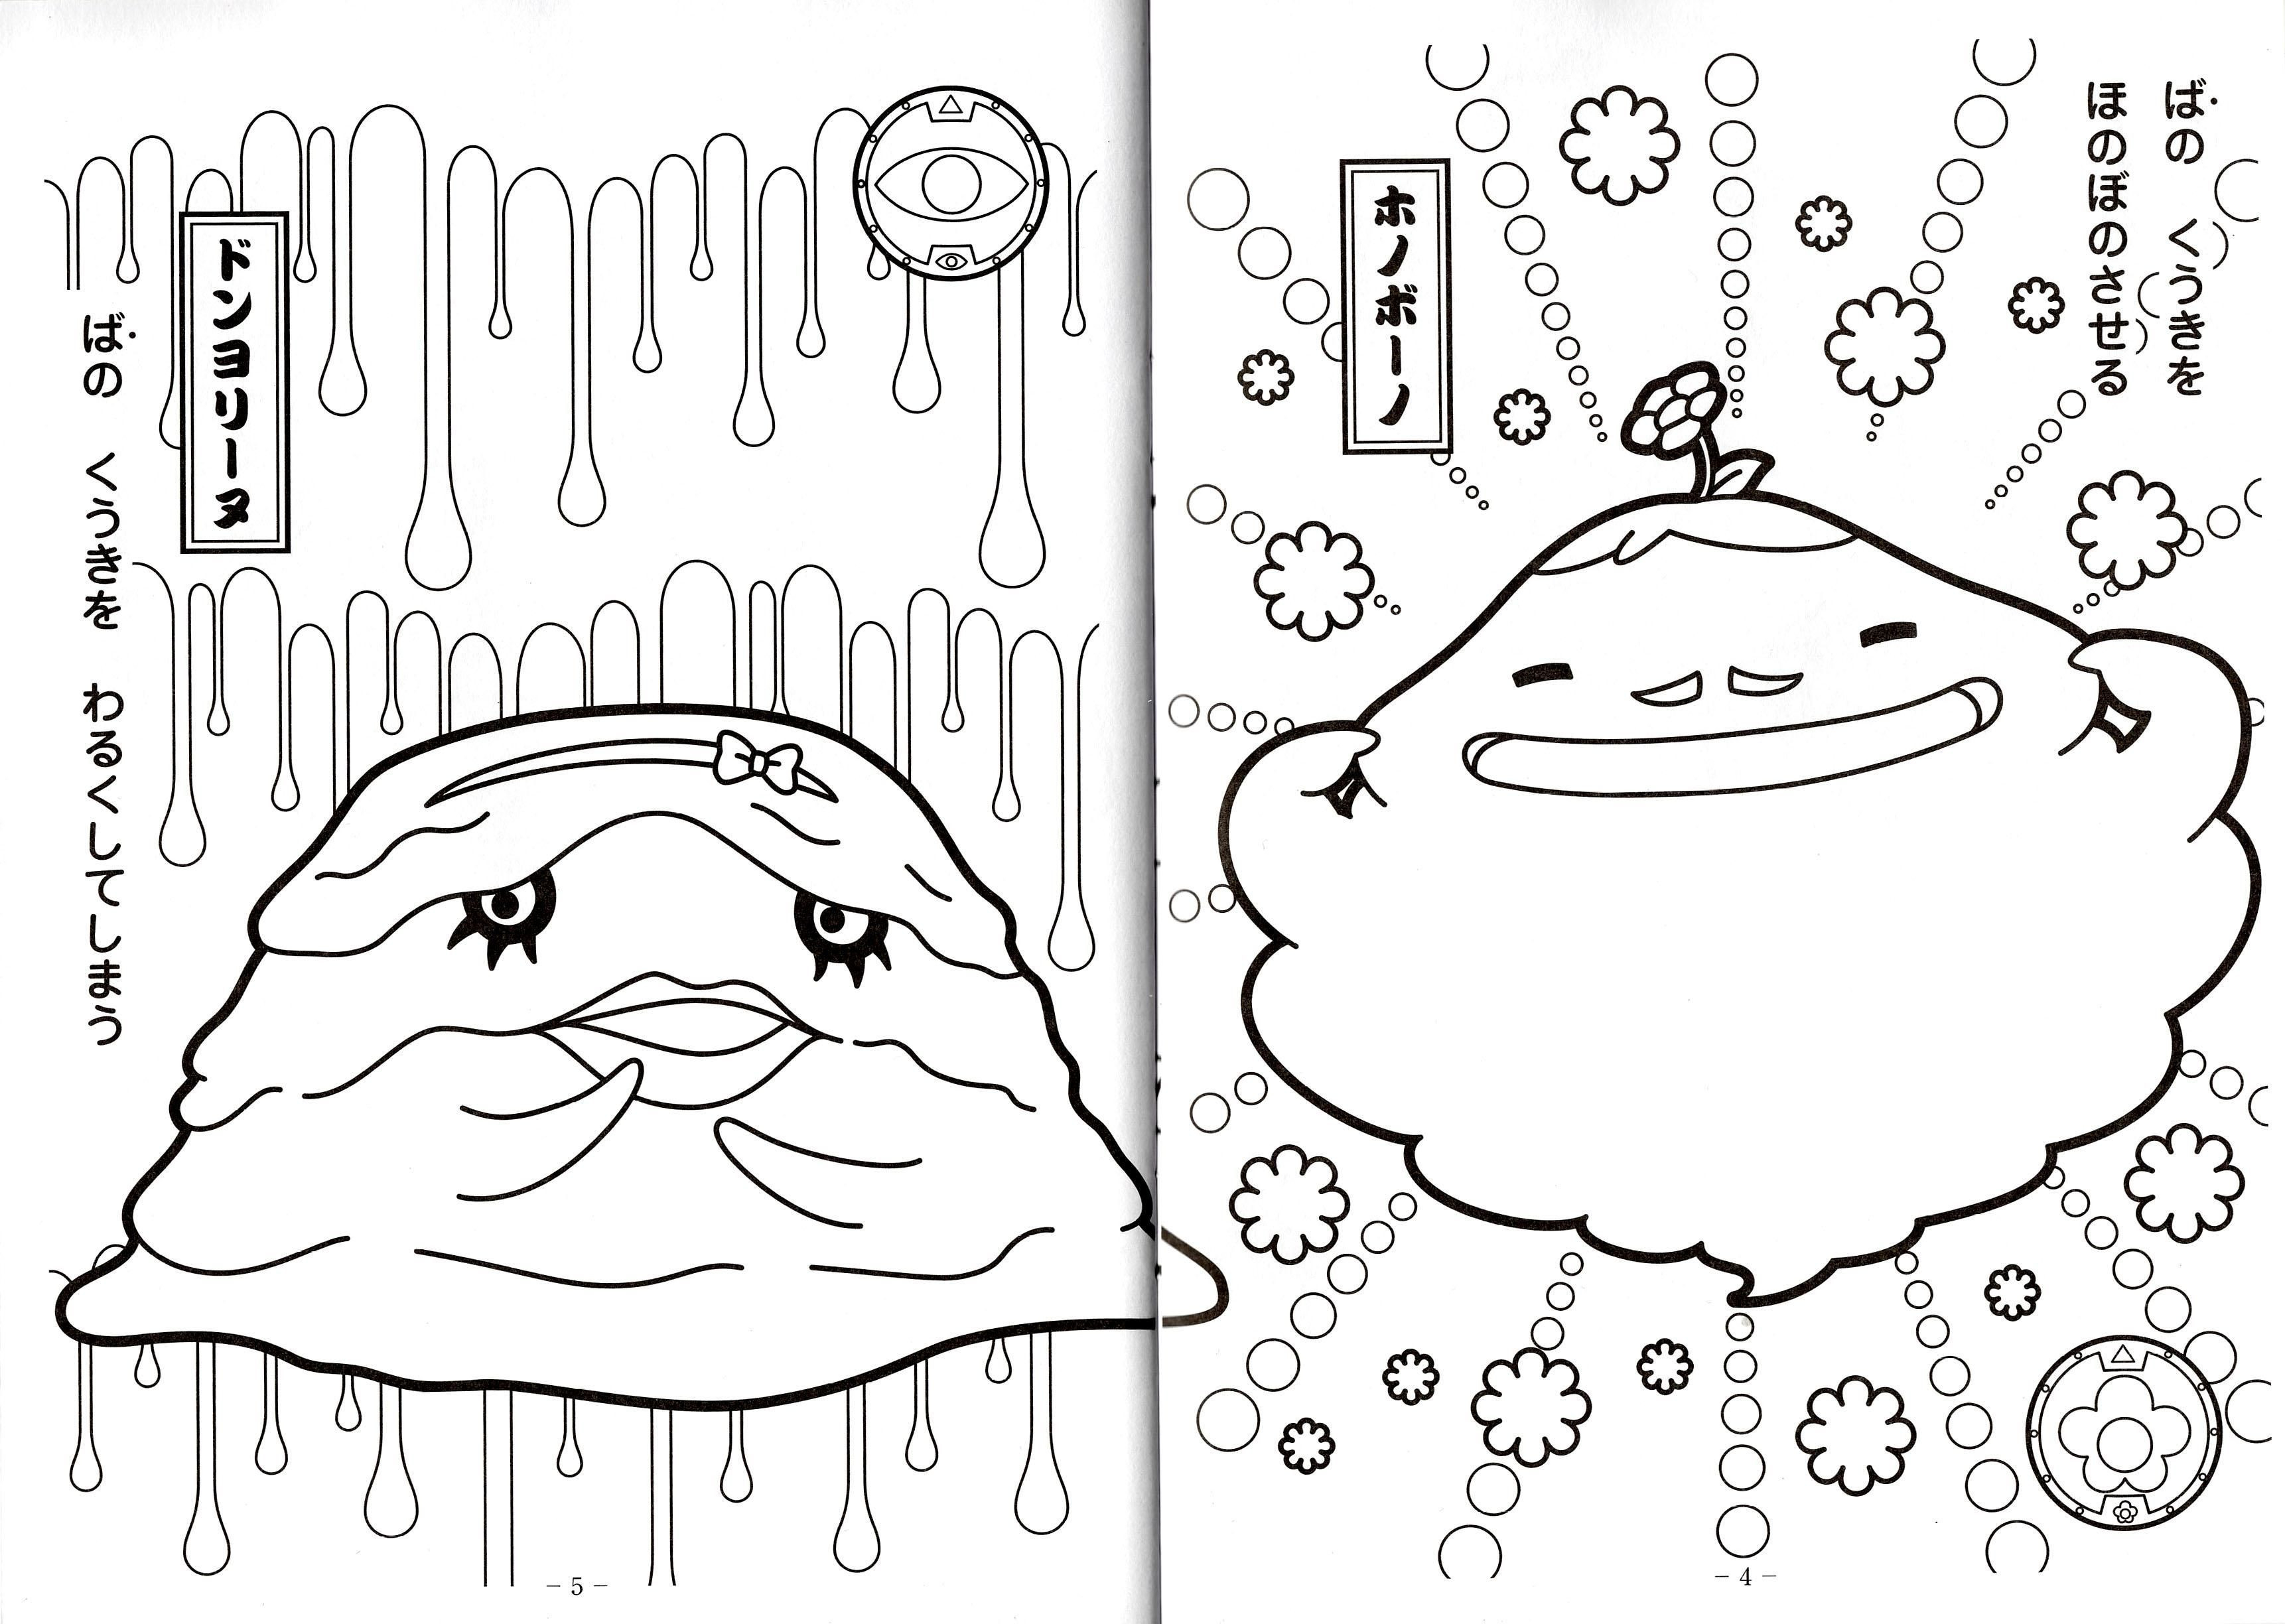 Rosa Parks Coloring Page Unique Coloring Page Yokai Watch to Print Of Yo Kai Watch Coloring Pages to Print to Print